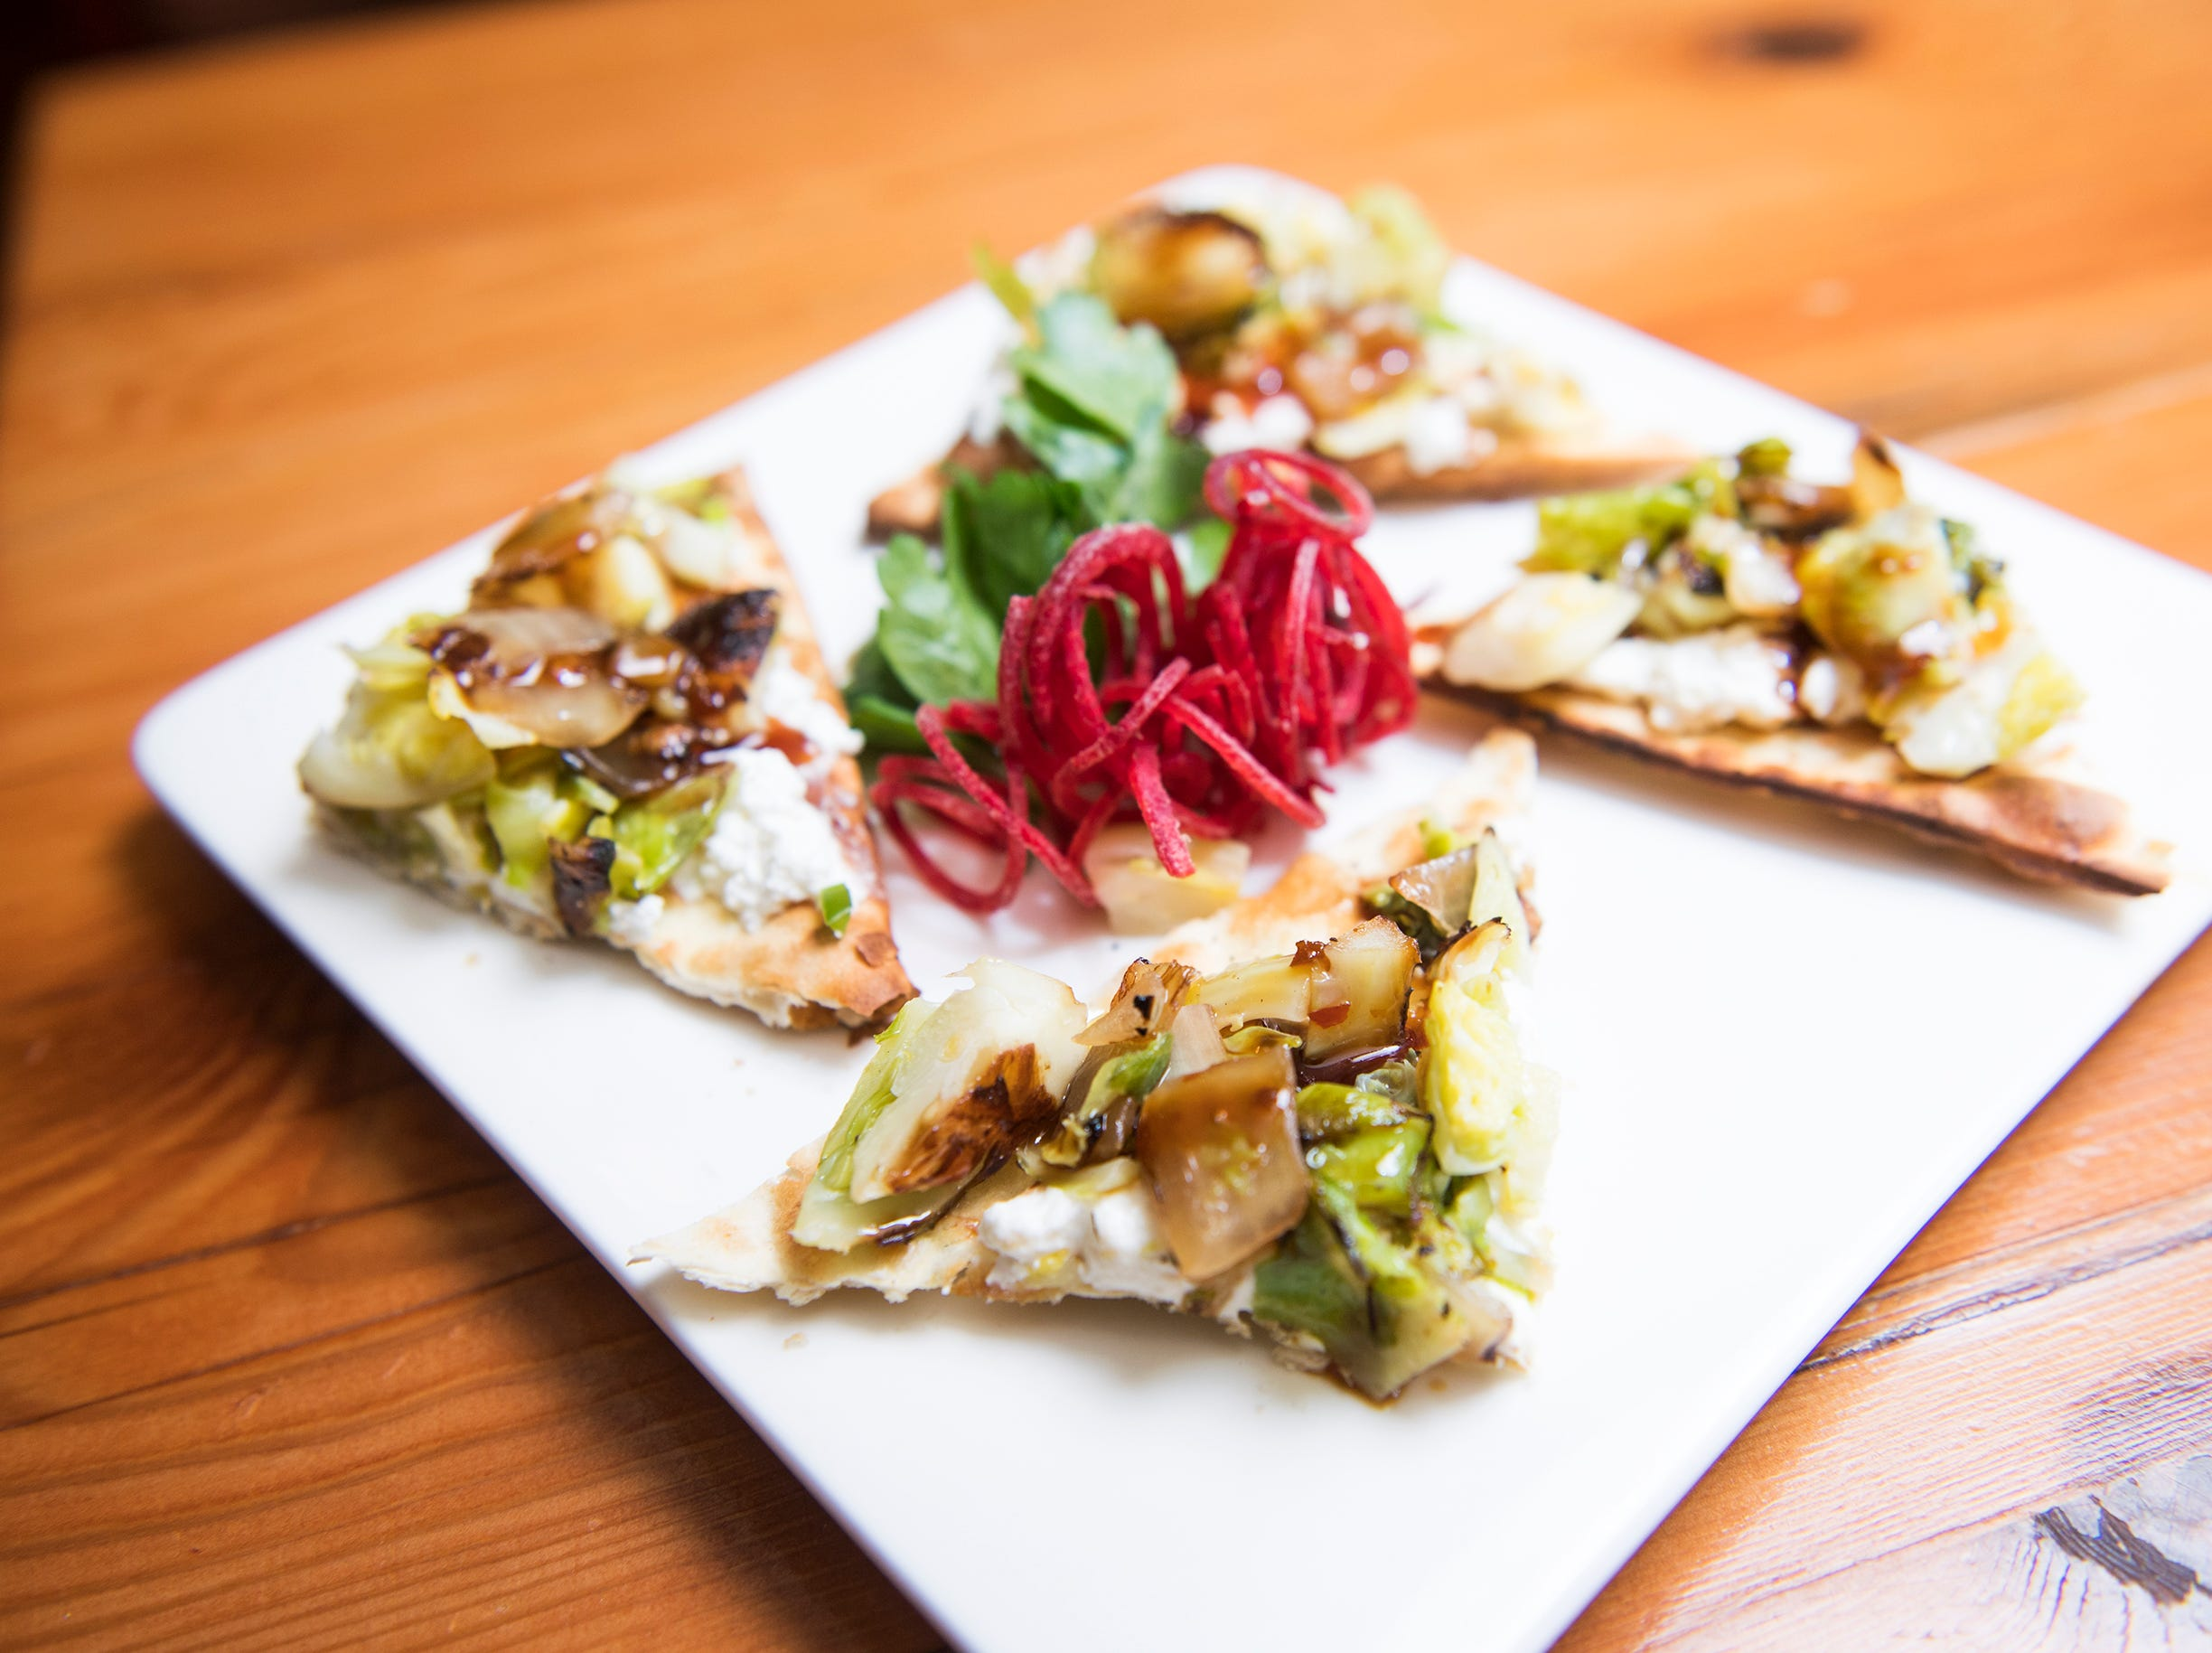 Roasted Brussels sprouts and ricotta flatbread is part of the SJ Hot Chefs Restaurant Week menu at Terra Nova in Sewell.